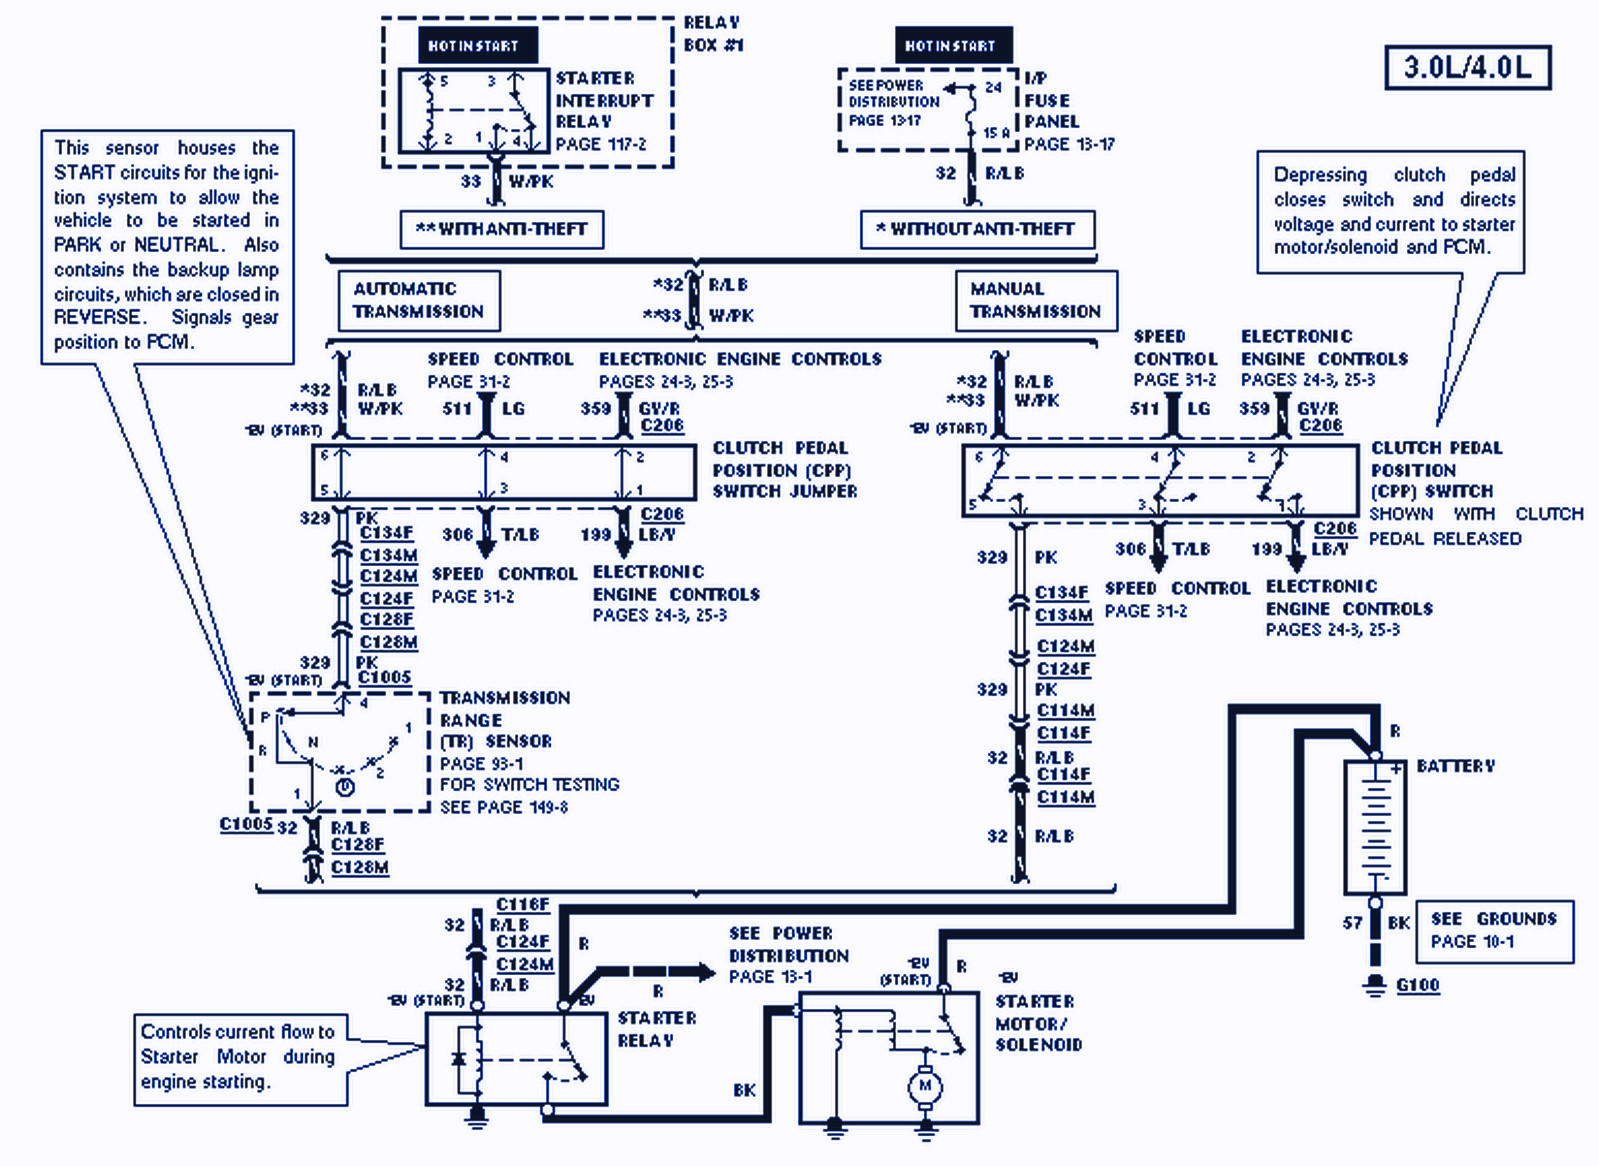 1995 mercury tracer engine diagram wiring diagram1984 mercury tracer wiring diagram best wiring library1995 mercury tracer [ 1599 x 1166 Pixel ]